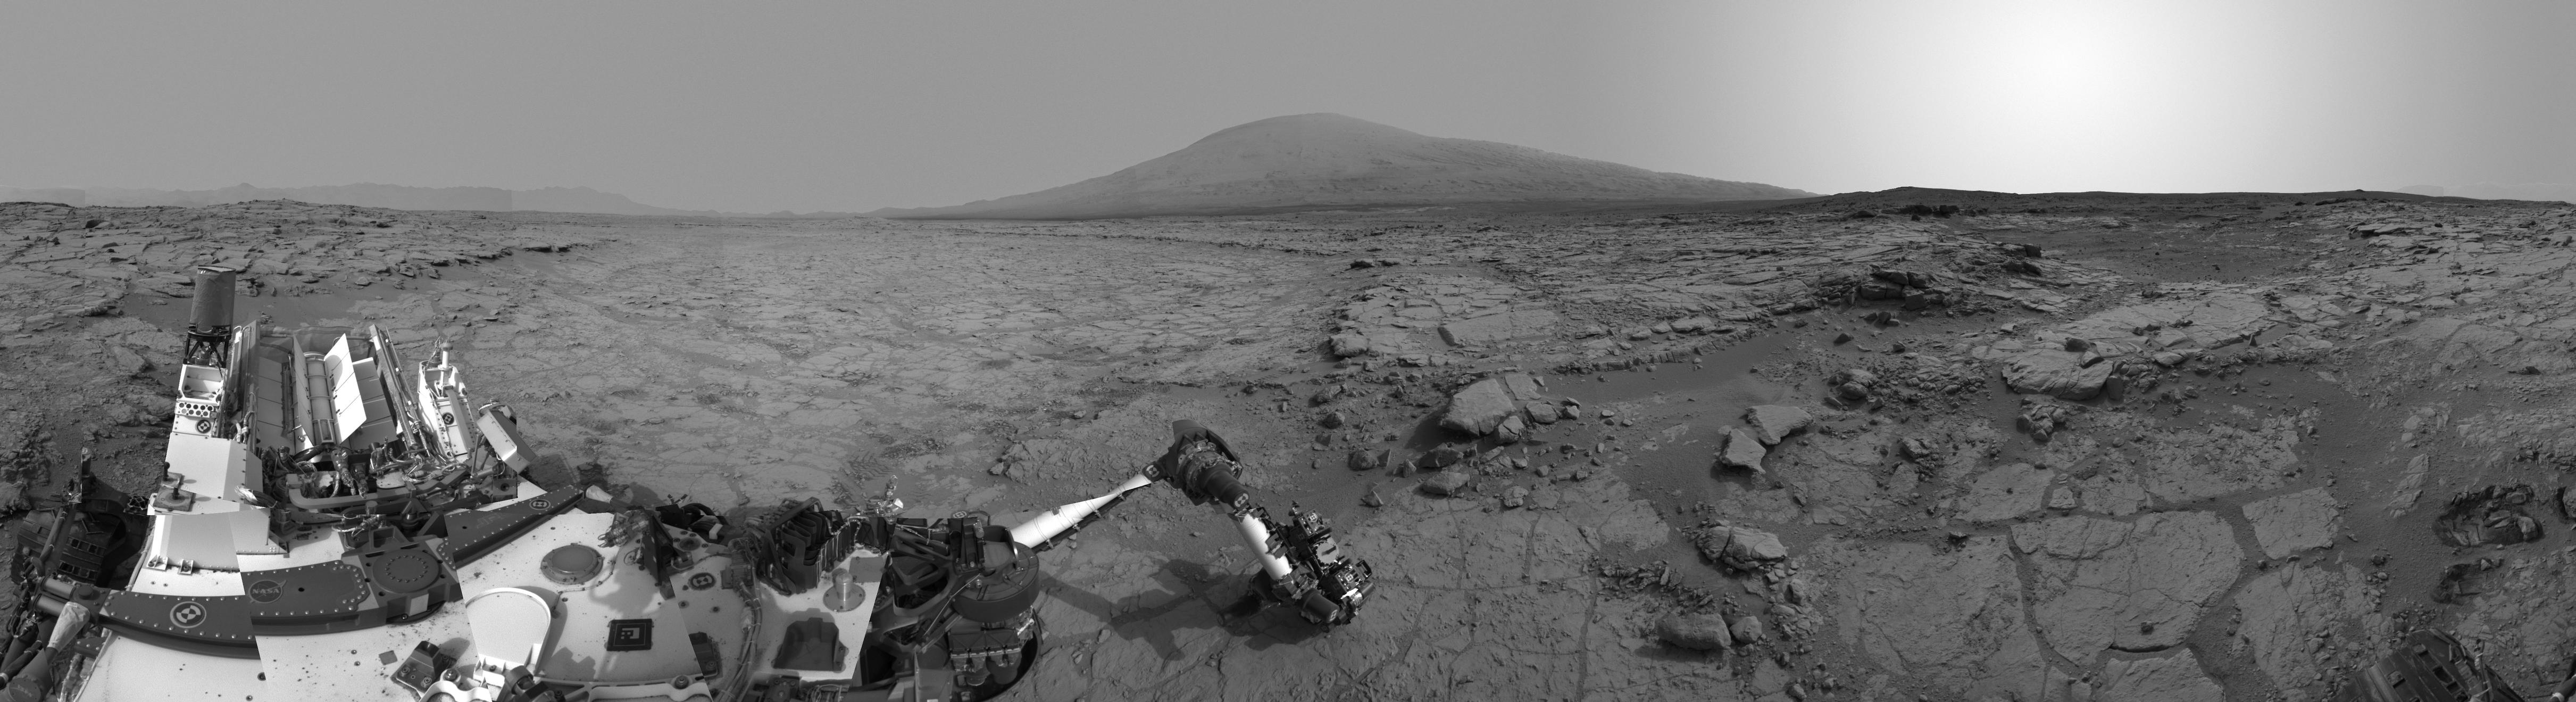 This right-eye member of a stereo pair of images from the Navigation Camera (Navcam) on NASA's Curiosity Mars rover shows a full 360-degree view of the rover's surroundings at the site where it first drilled into a rock.